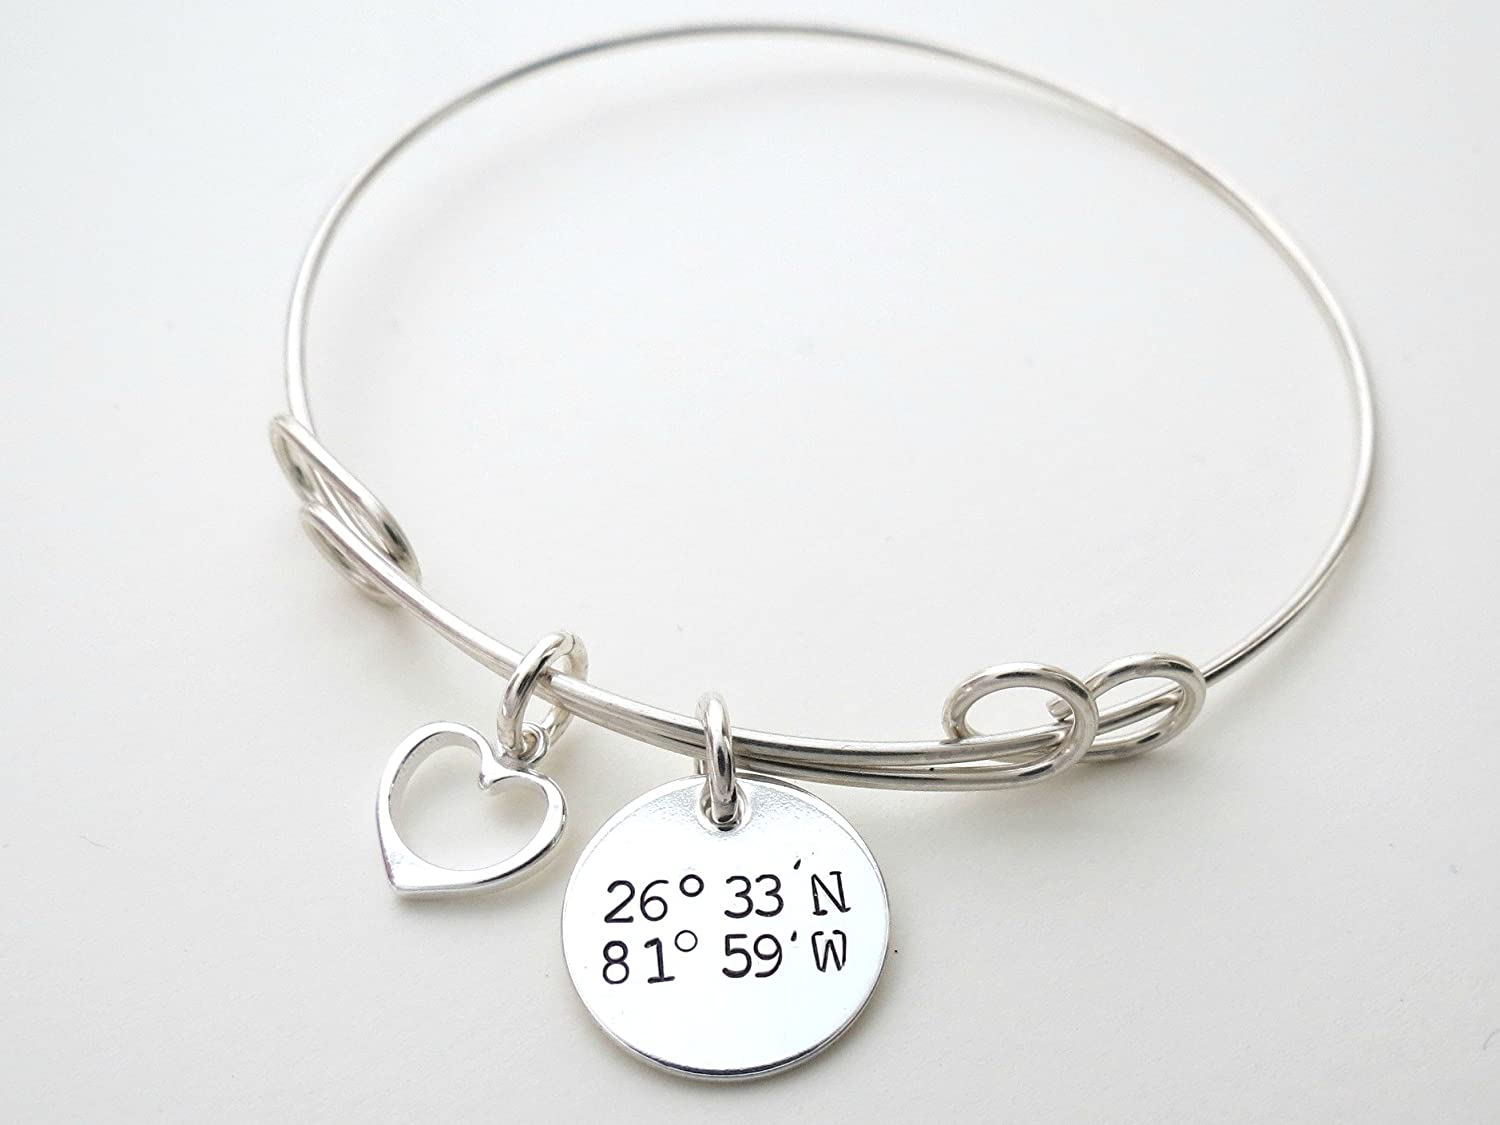 inspirational location custom bracelets coordinate gps cuff gift message bracelet personalized braceletcompass comp best coordinates